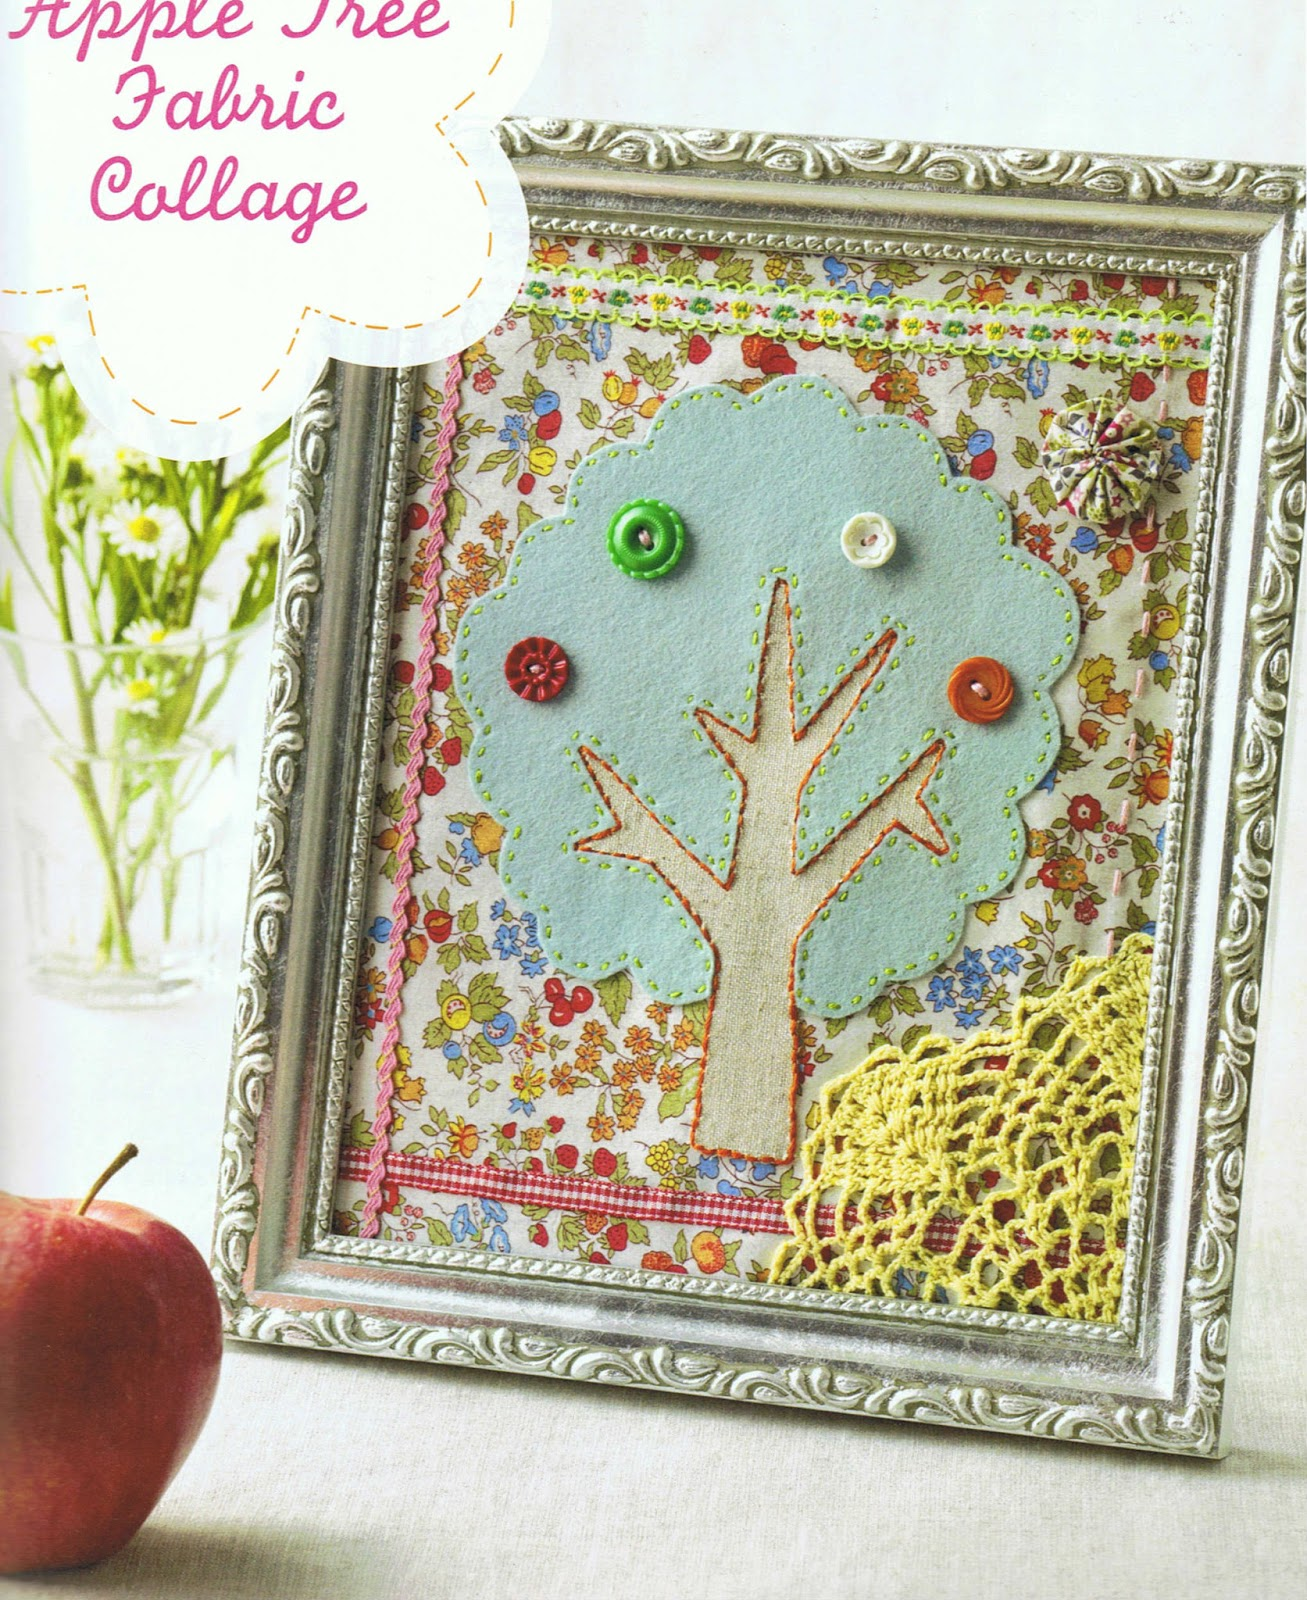 image sew darn cute jenny ryan fabric collage tree apple book review